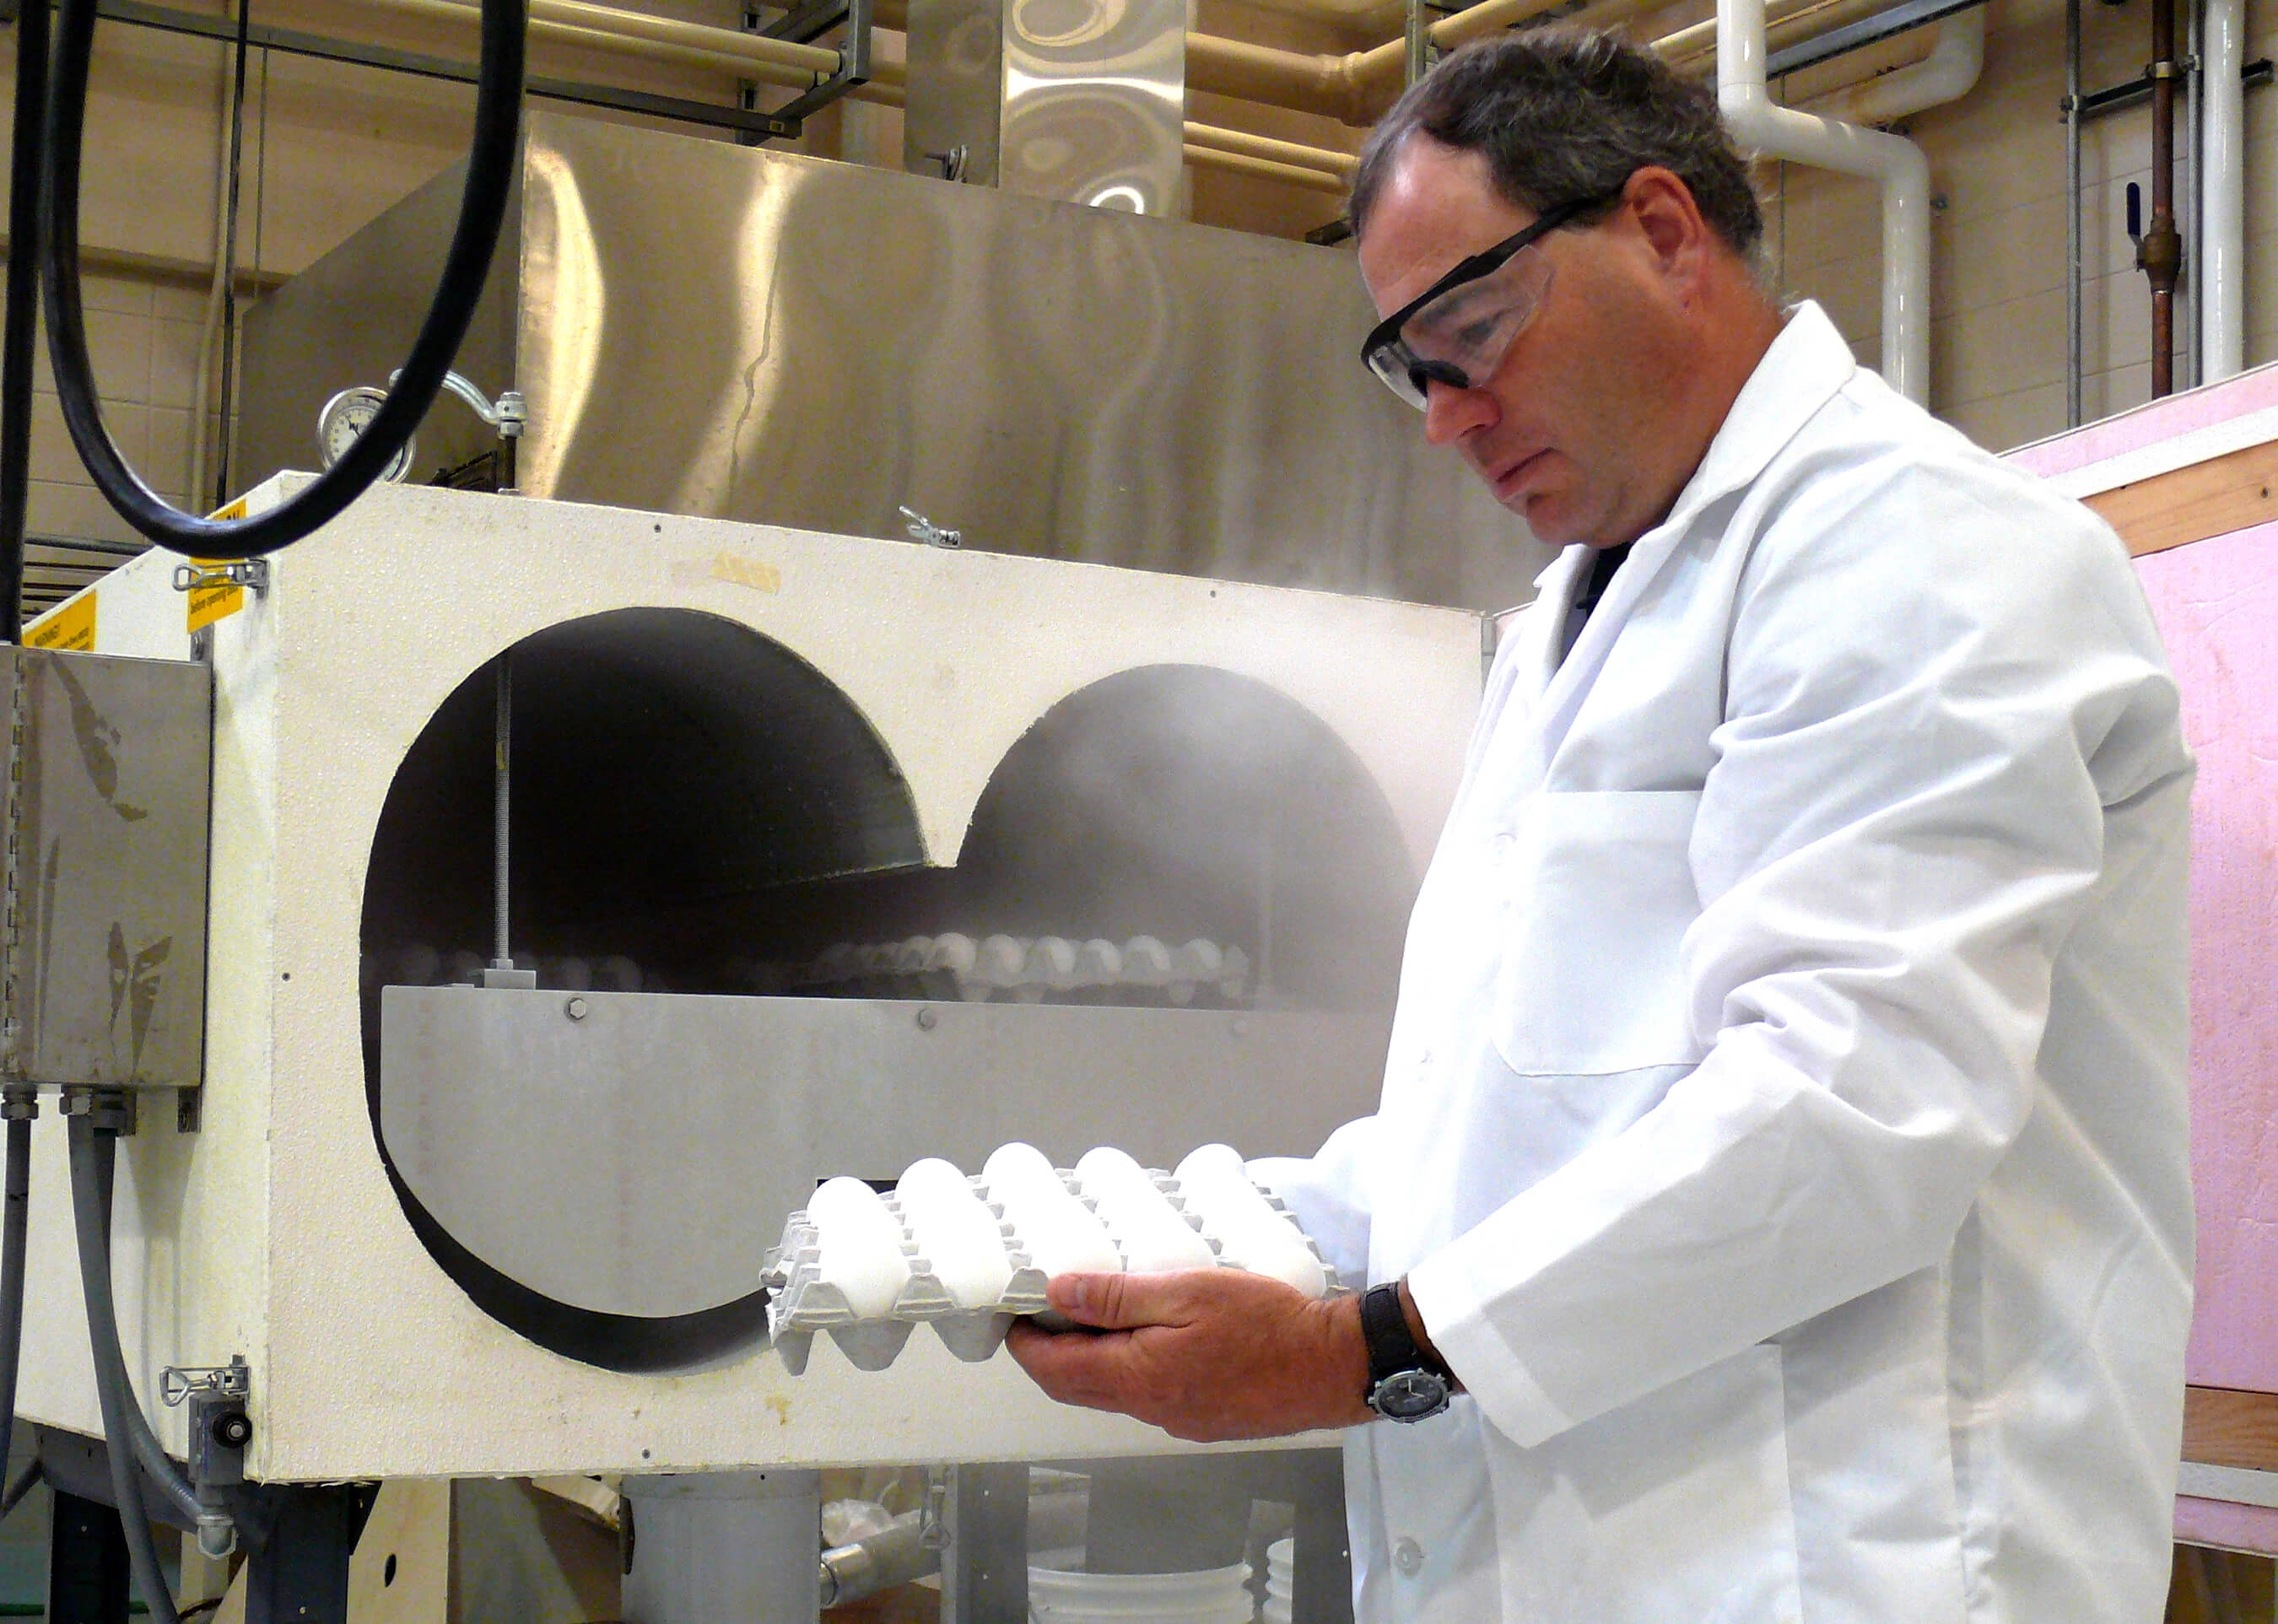 Rapidly cooling eggs can double shelf life, decrease risk of illness